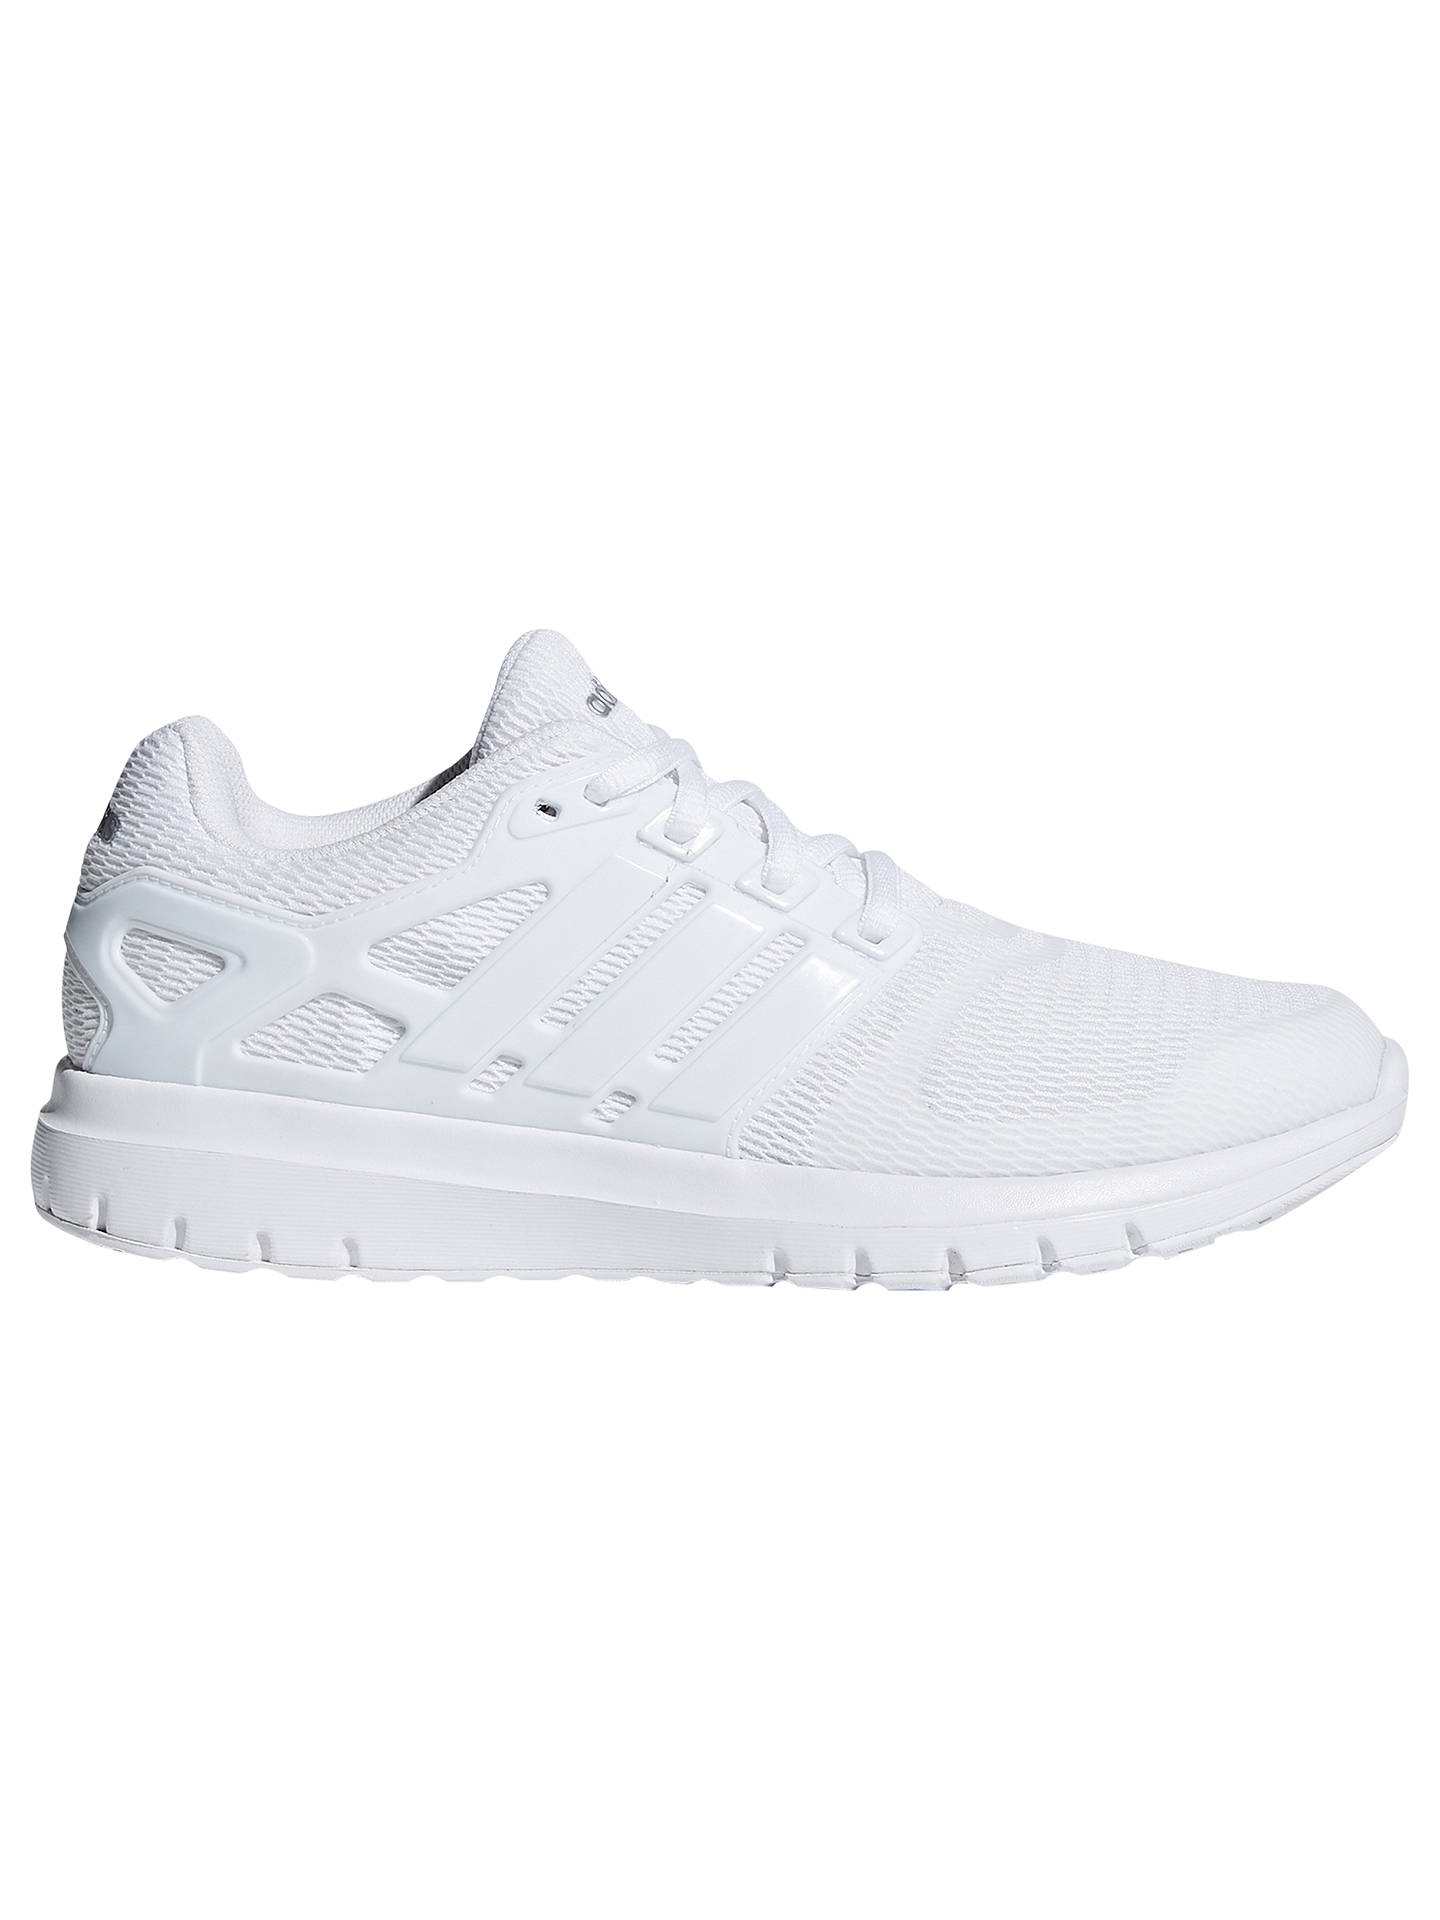 Buyadidas Energy Cloud V Women's Running Shoes, White, 4 Online at johnlewis.com